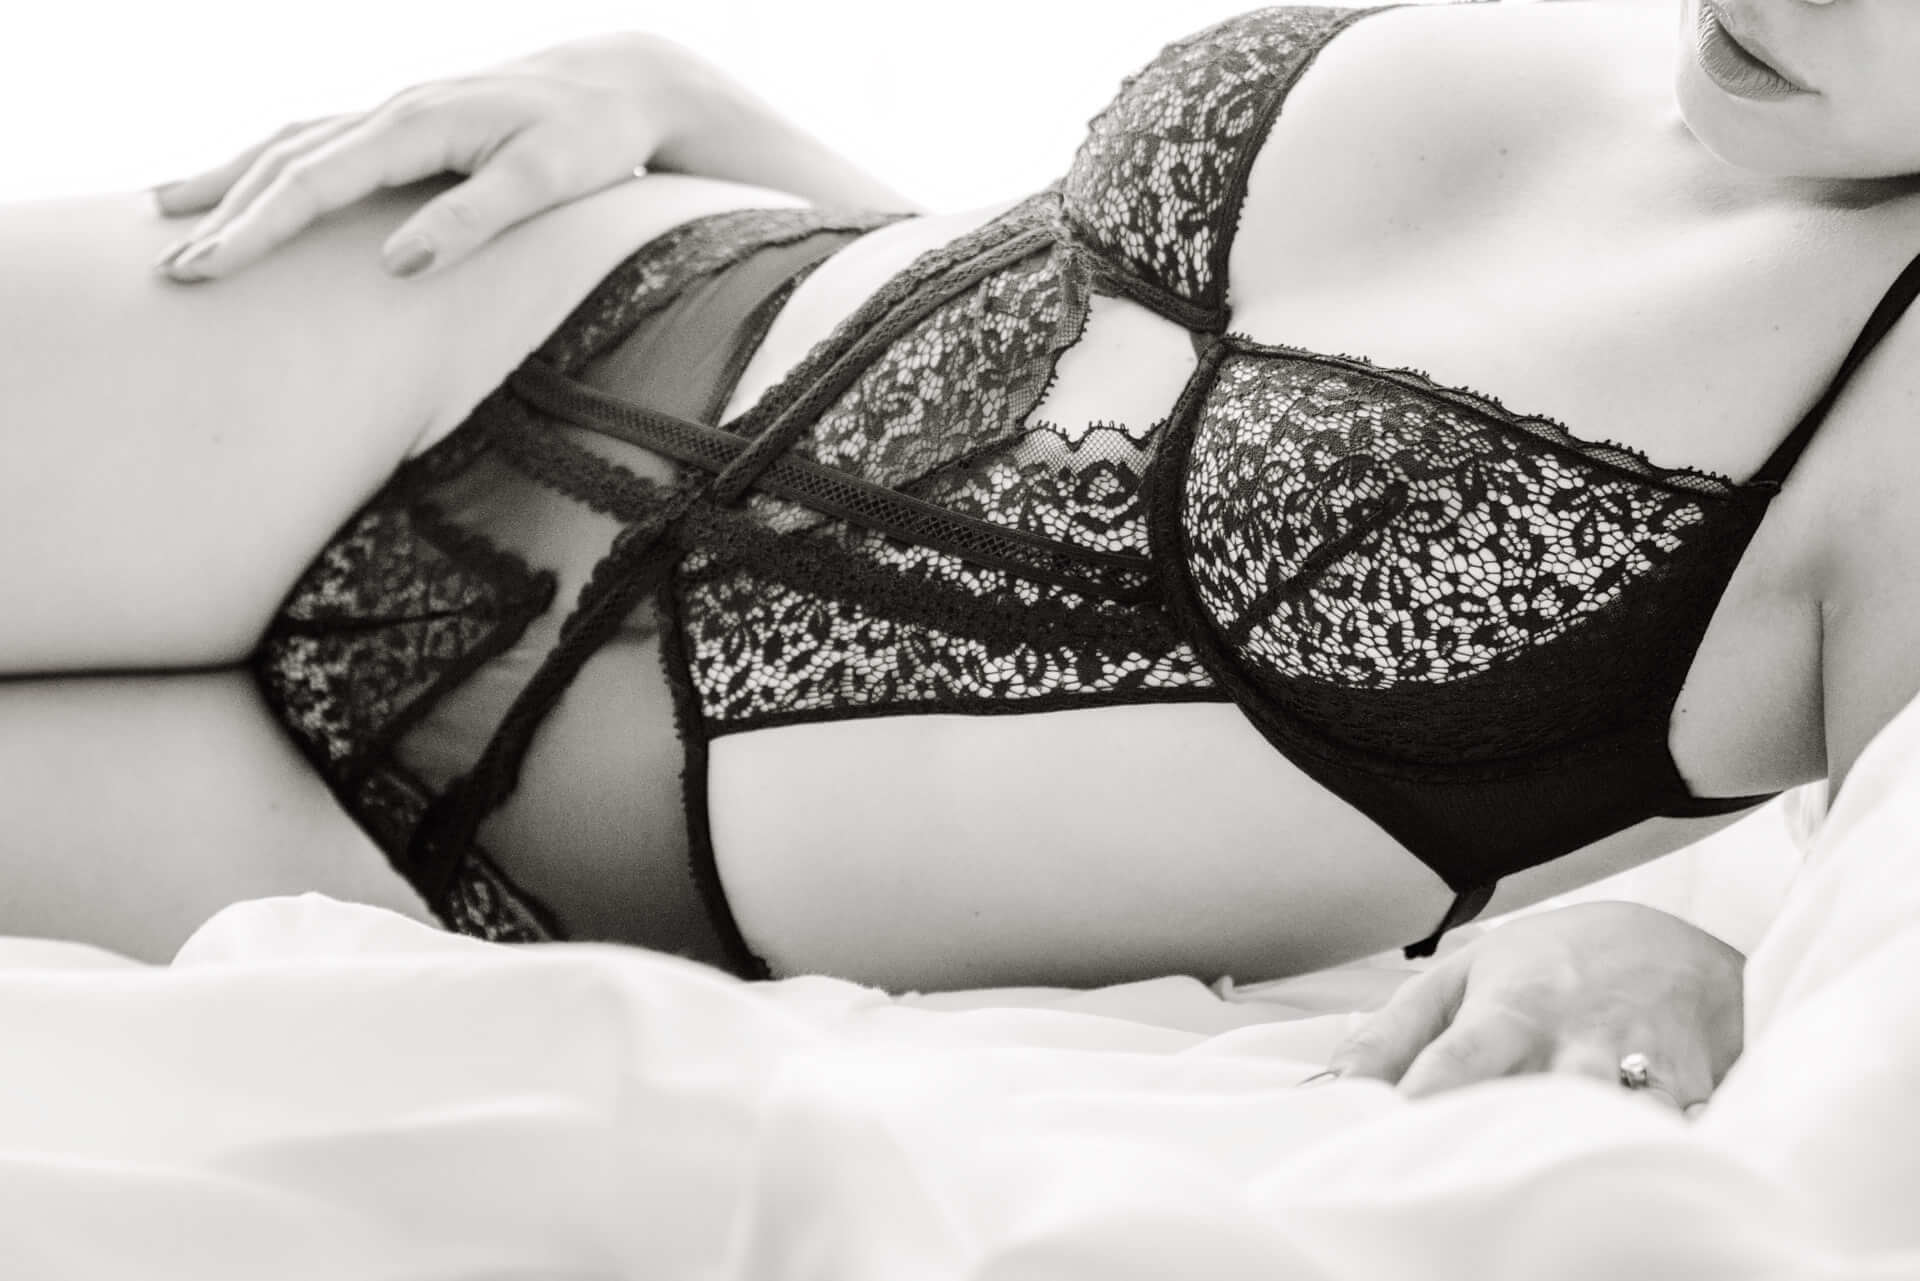 Toronto boudoir photography studio professional body positive bridal boudoir plus size